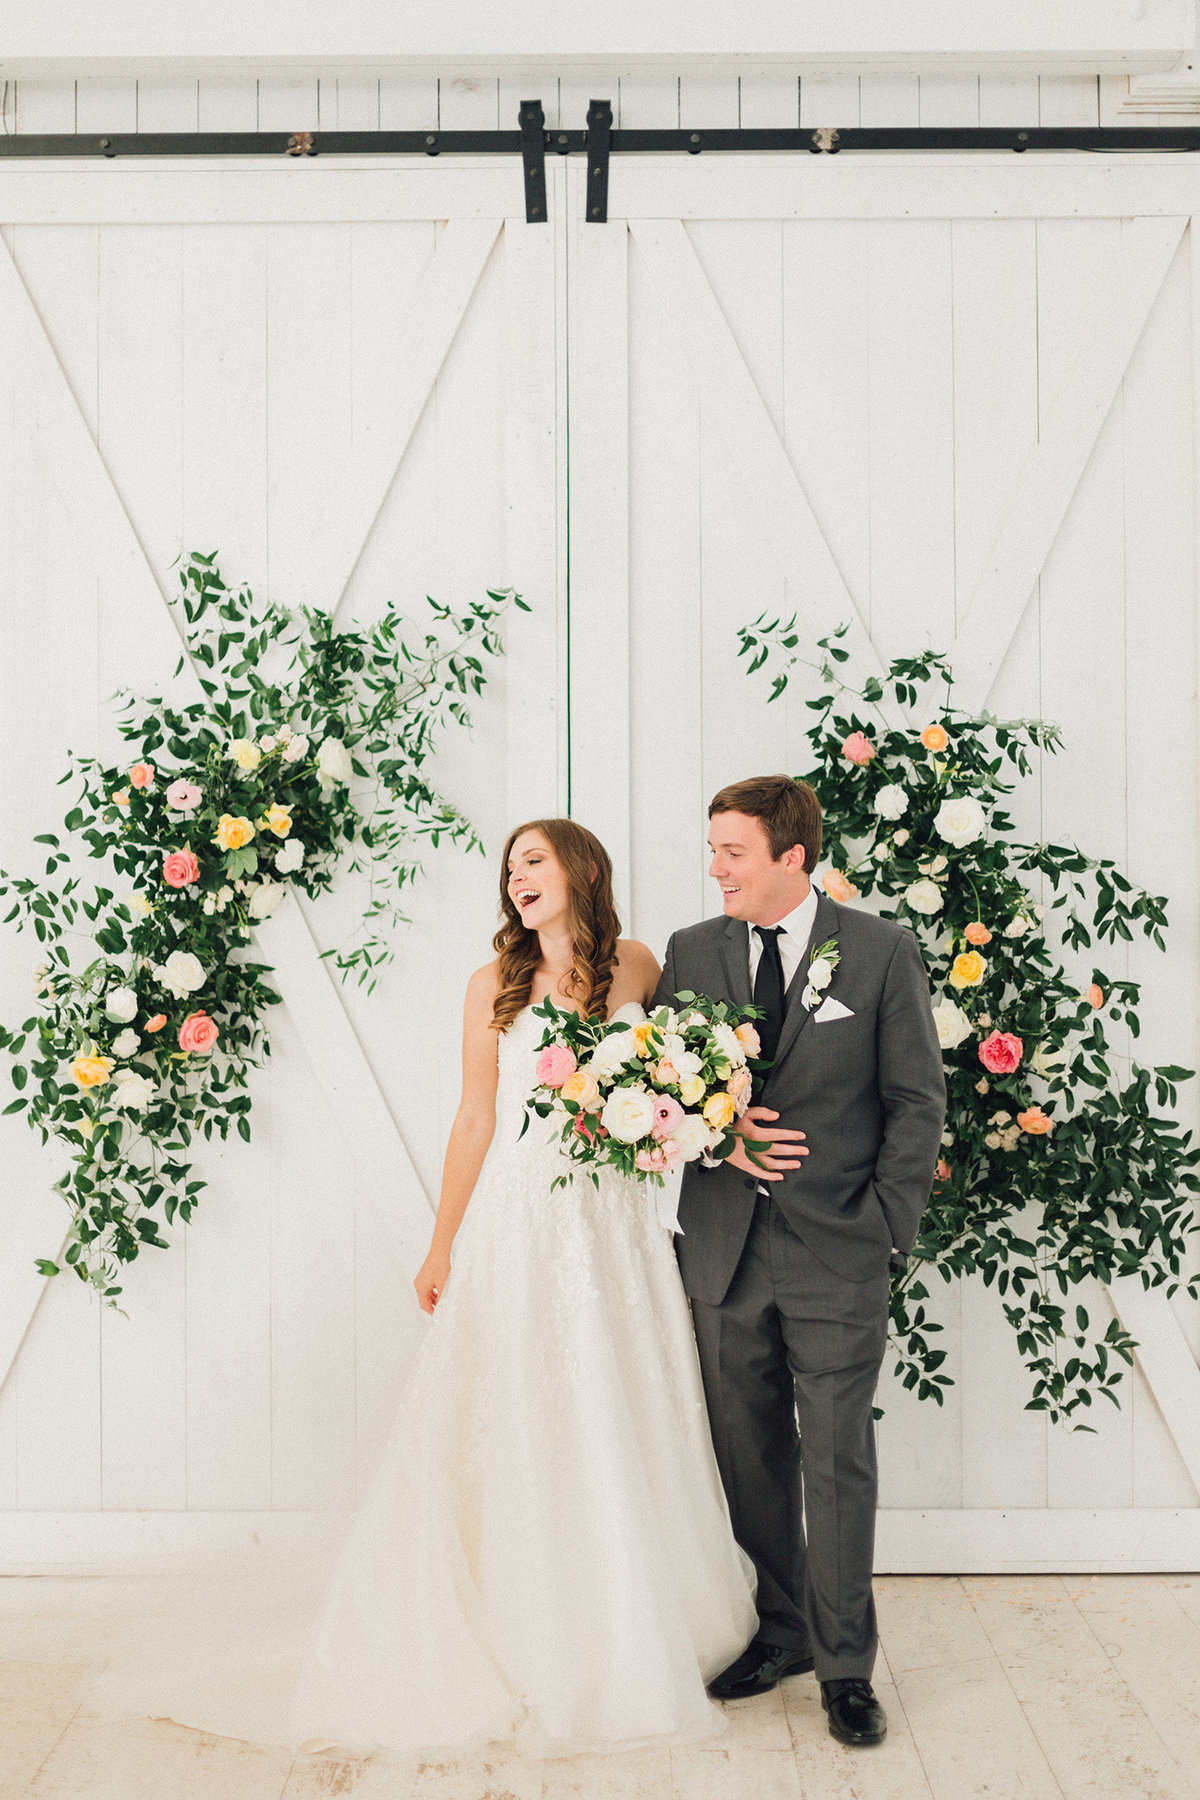 Modern Dallas Wedding Florist | Jubilee Flower Co. - The White Sparrow Colorful Outdoor Wedding